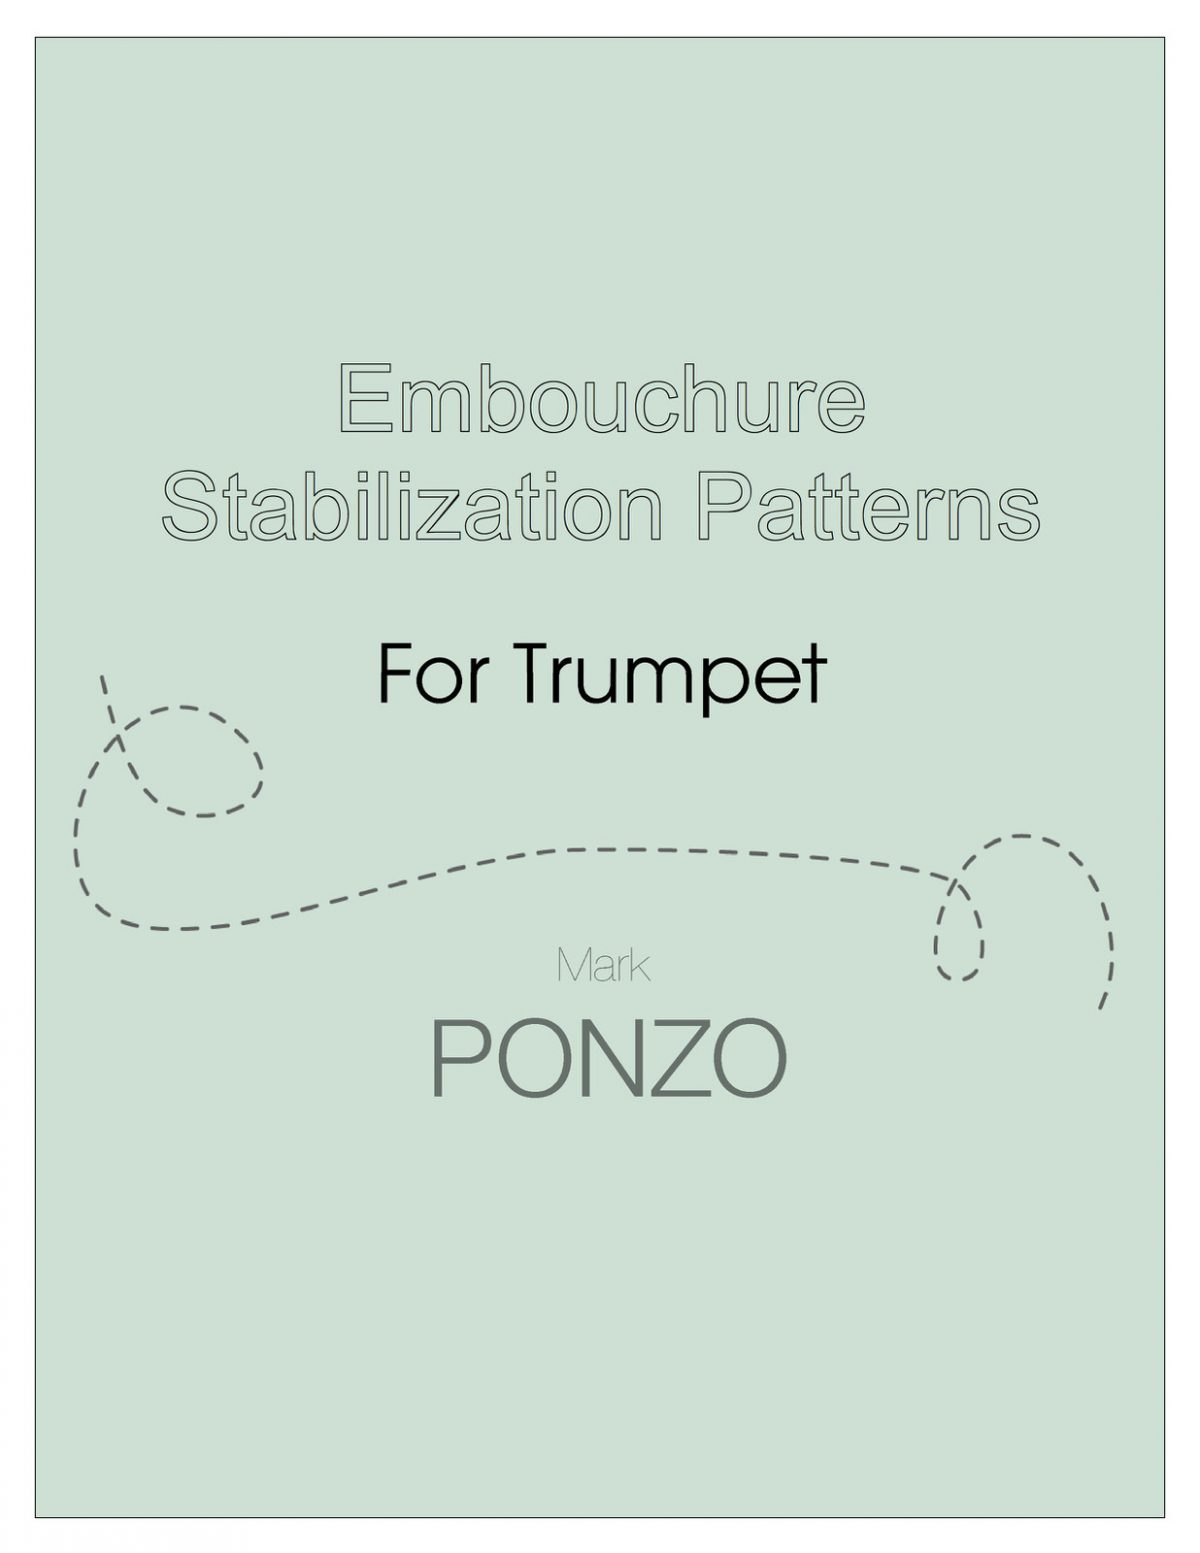 Ponzo, Embouchure Stabilization Patterns for Trumpet